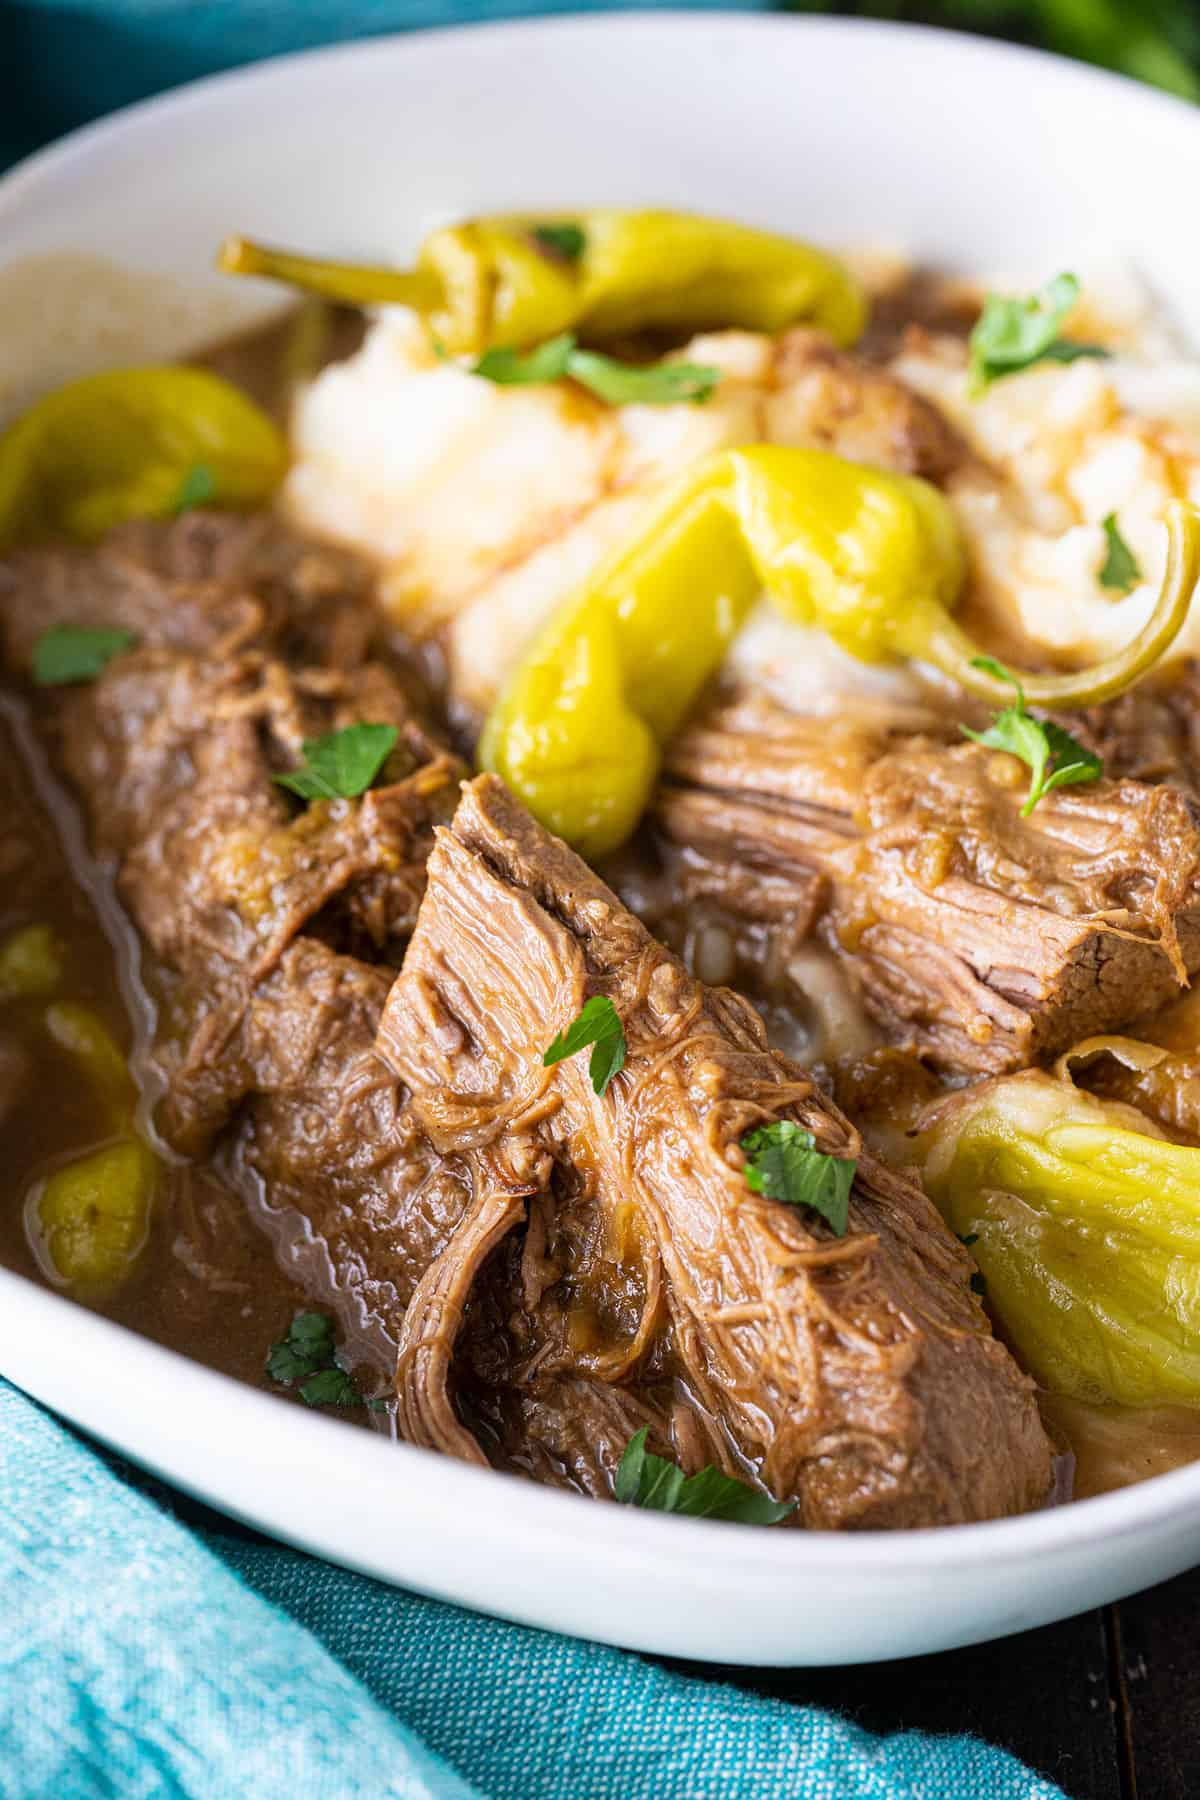 A close up shot of a Mississippi pot roast, shredded meat on the top with peppers.